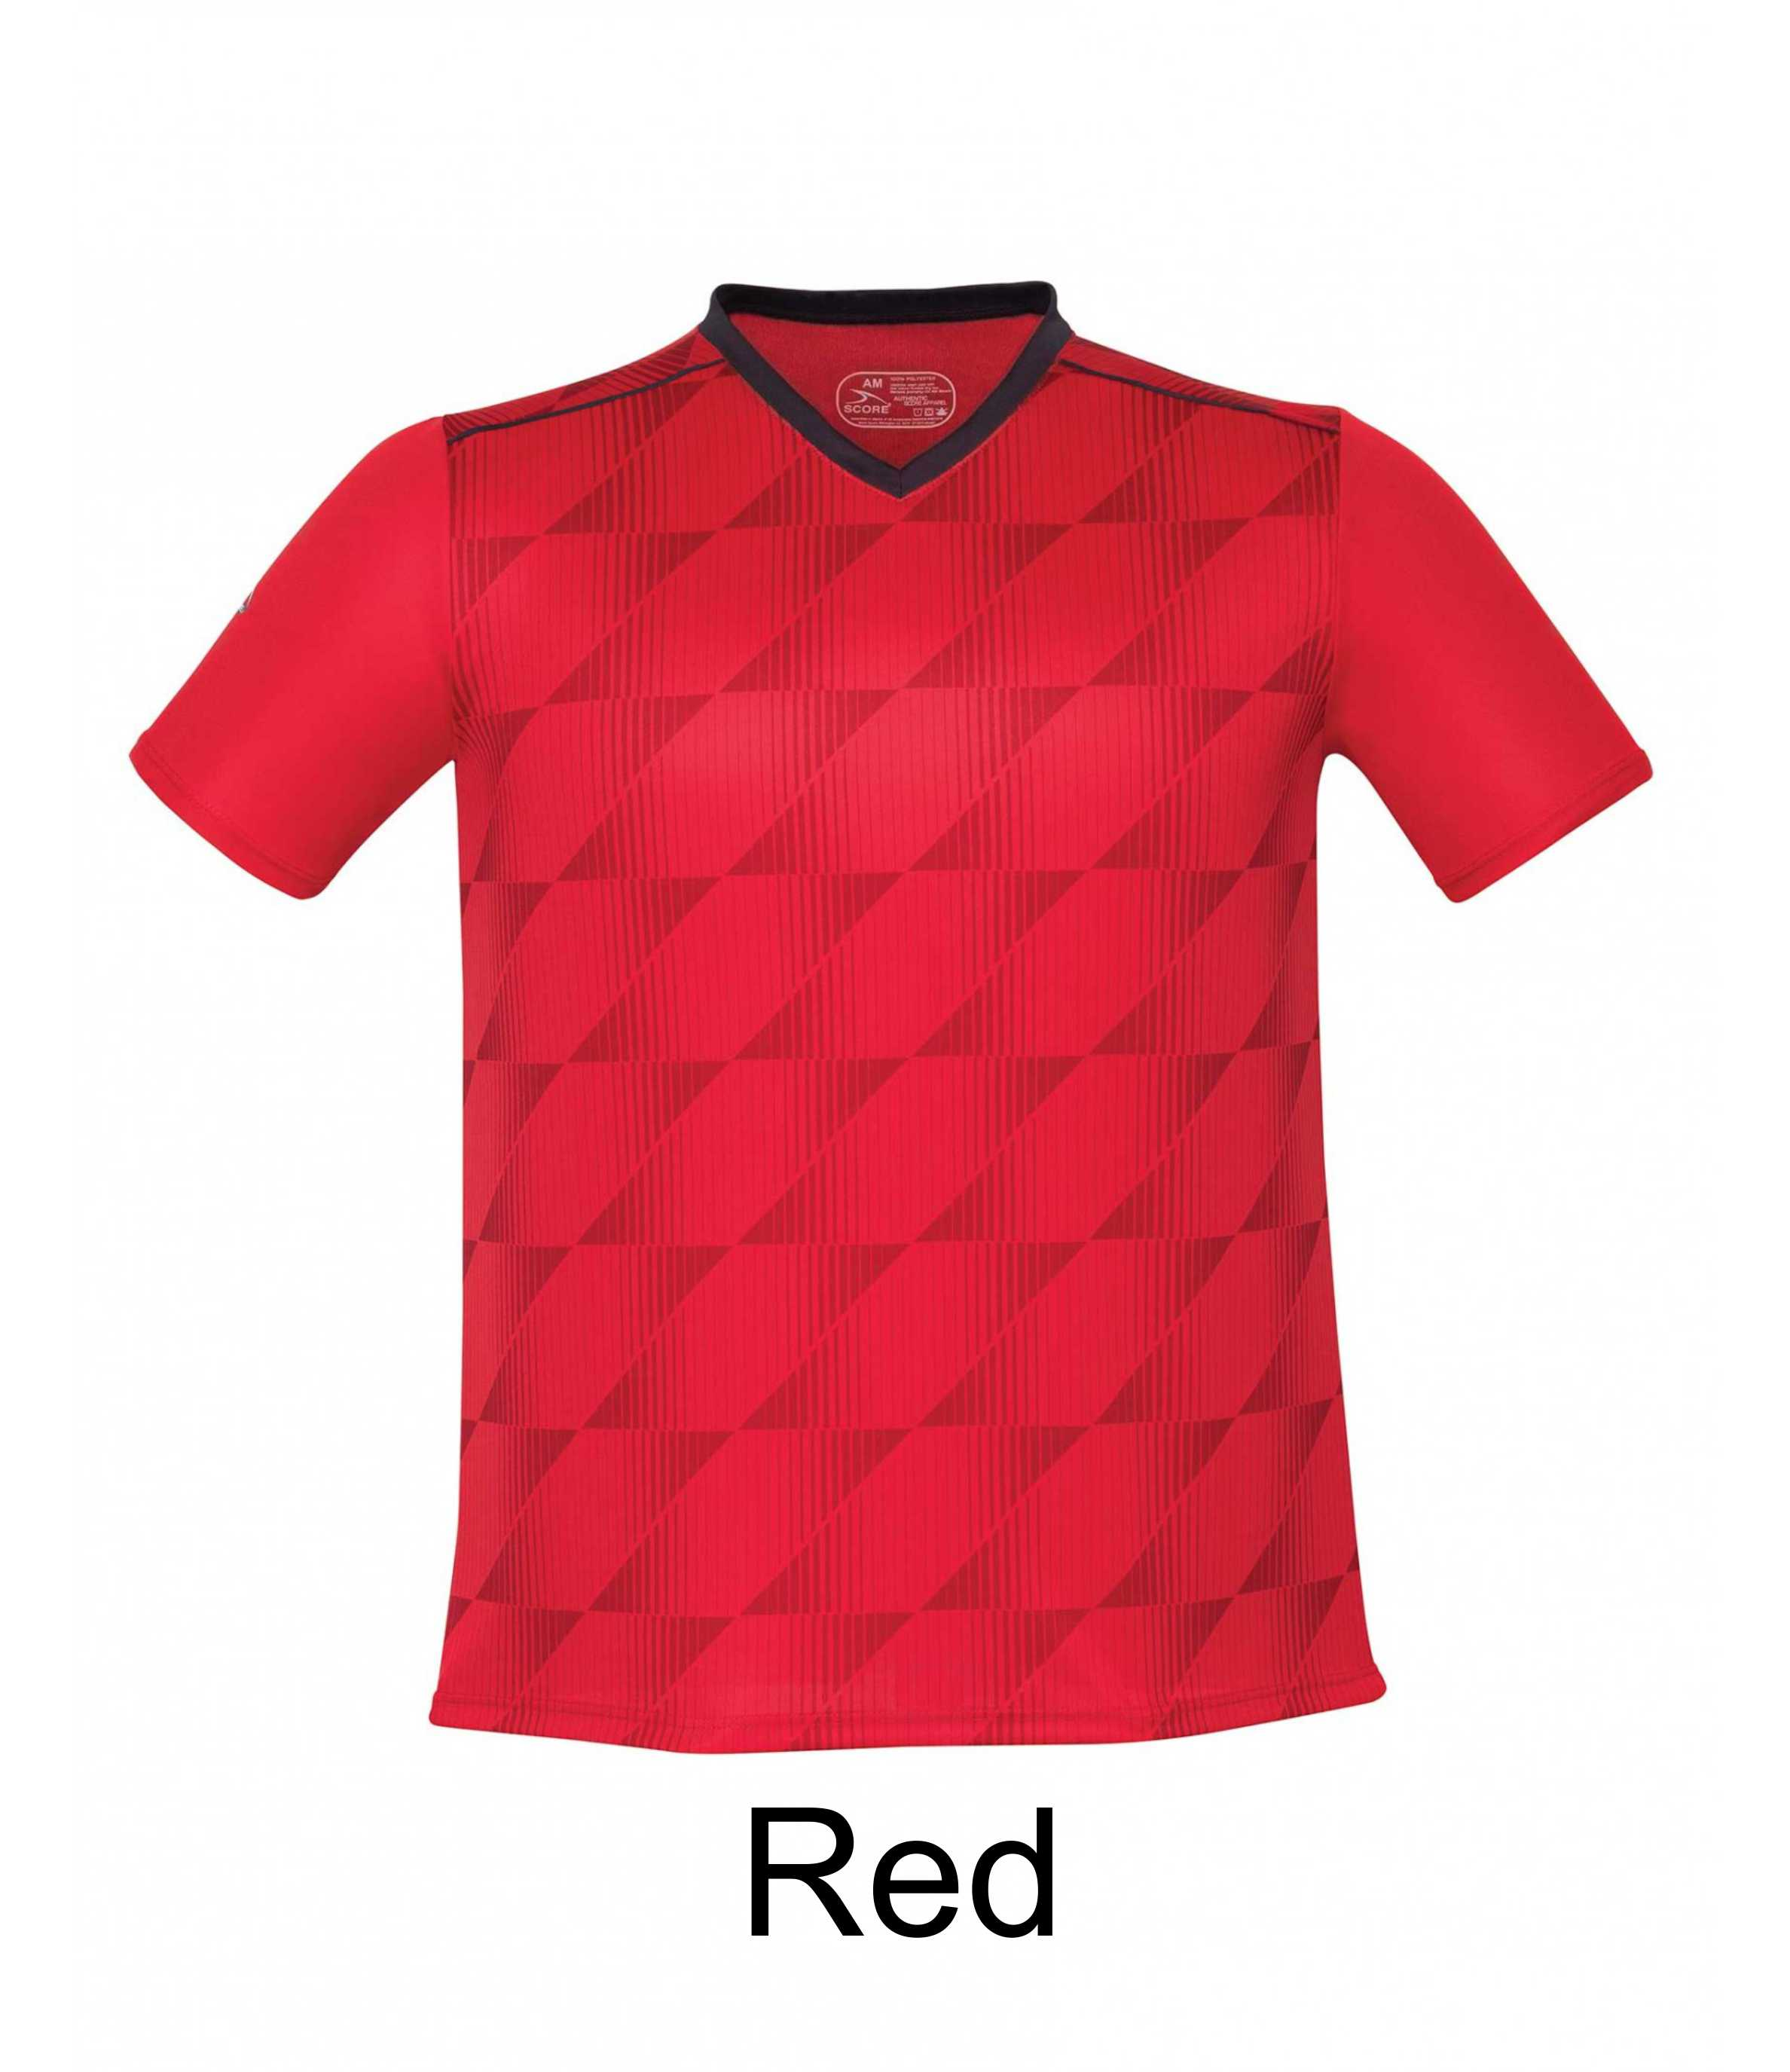 Red-Blk w Name 2.jpg